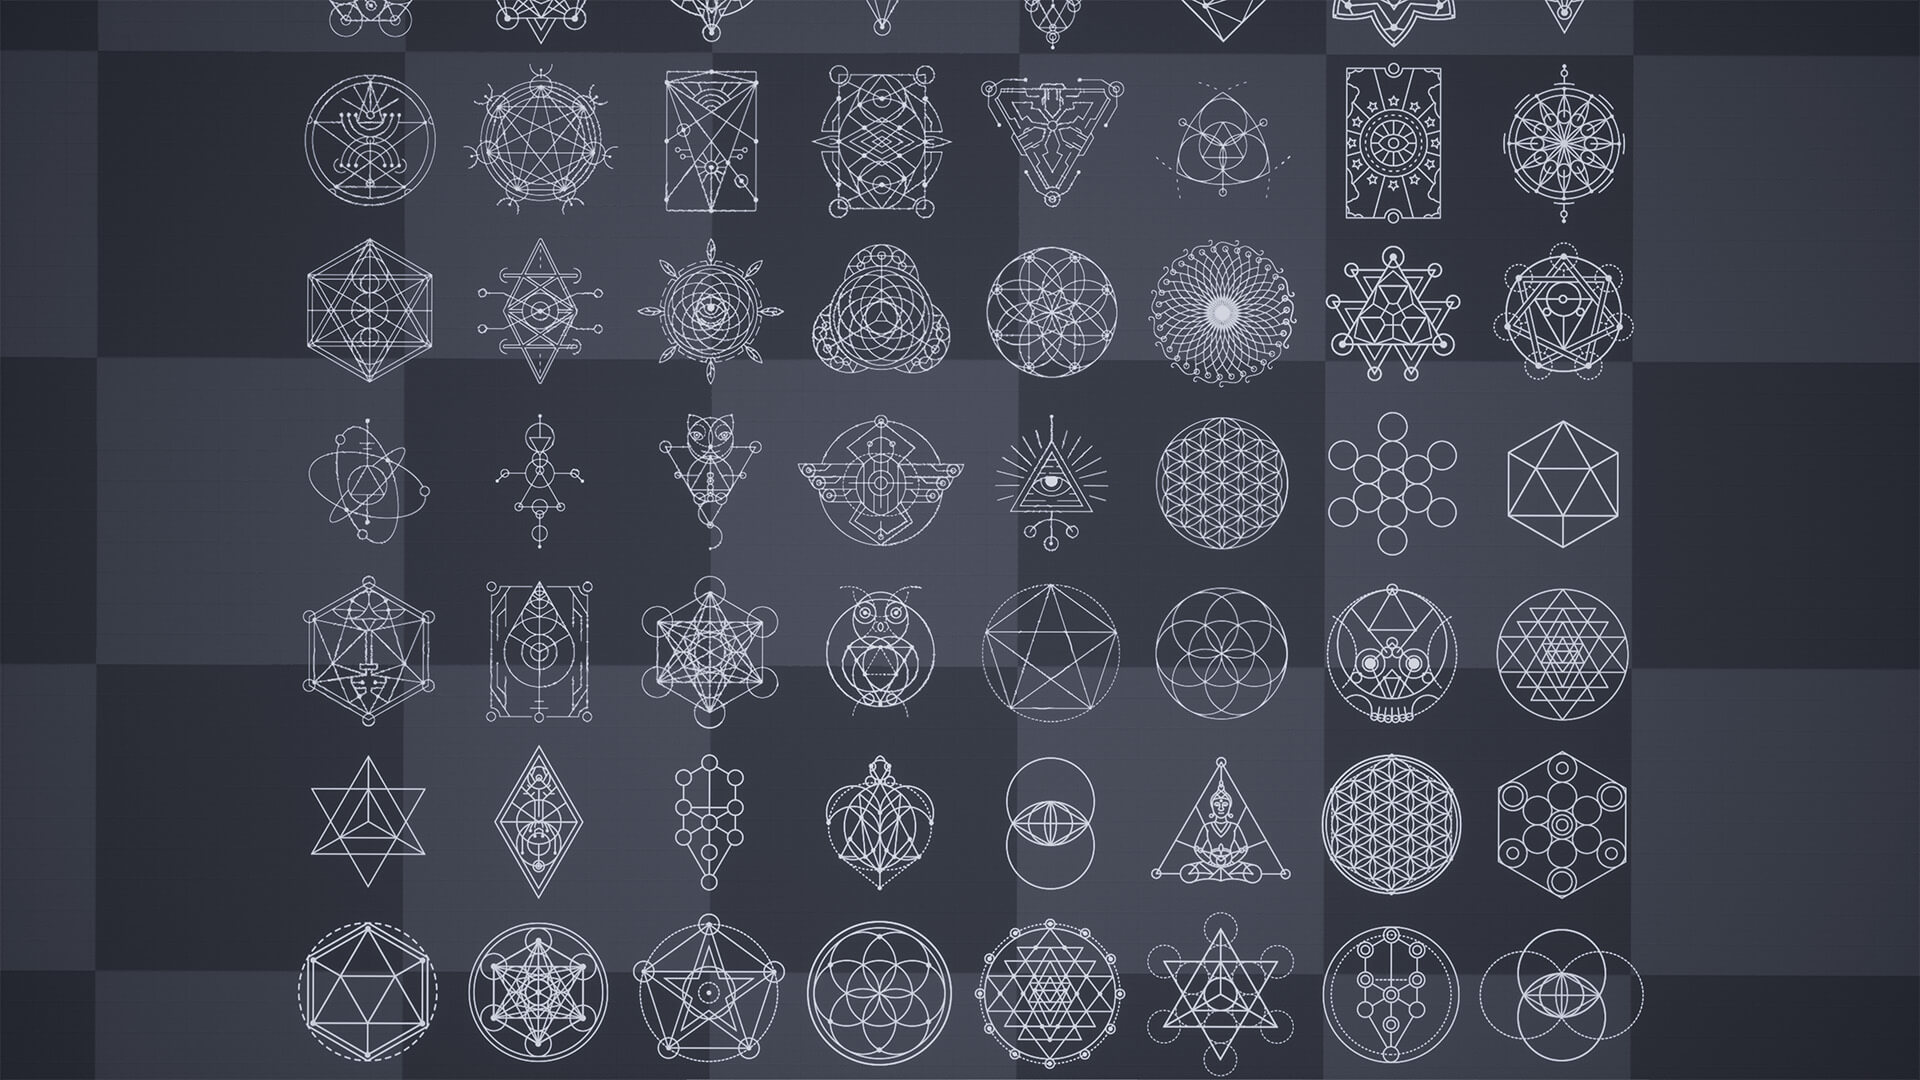 HG_SacredGeometry_Vol1_Overview_2